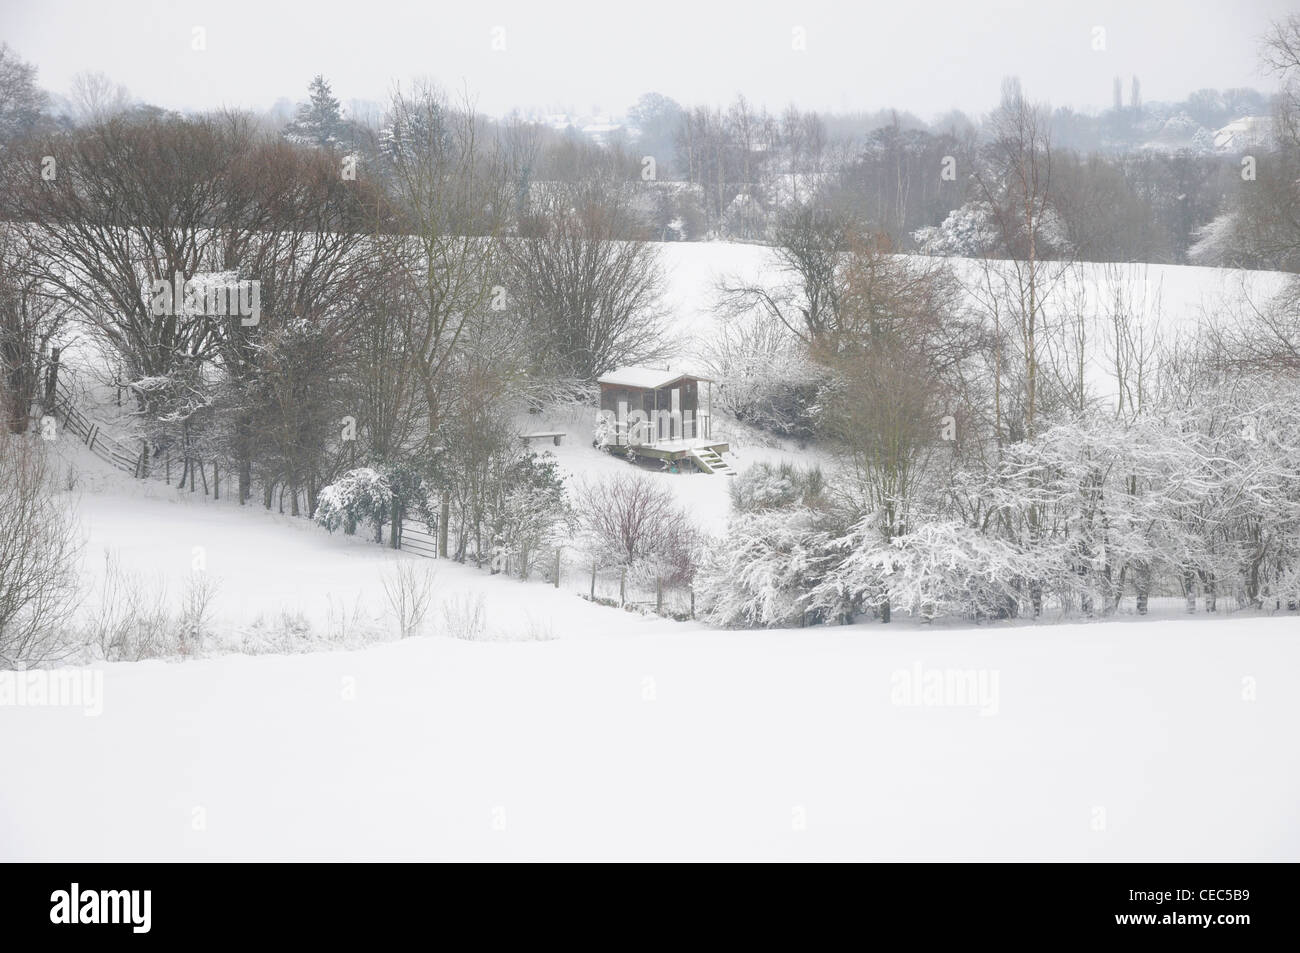 Summerhouse in winter snow landscape, UK - Stock Image